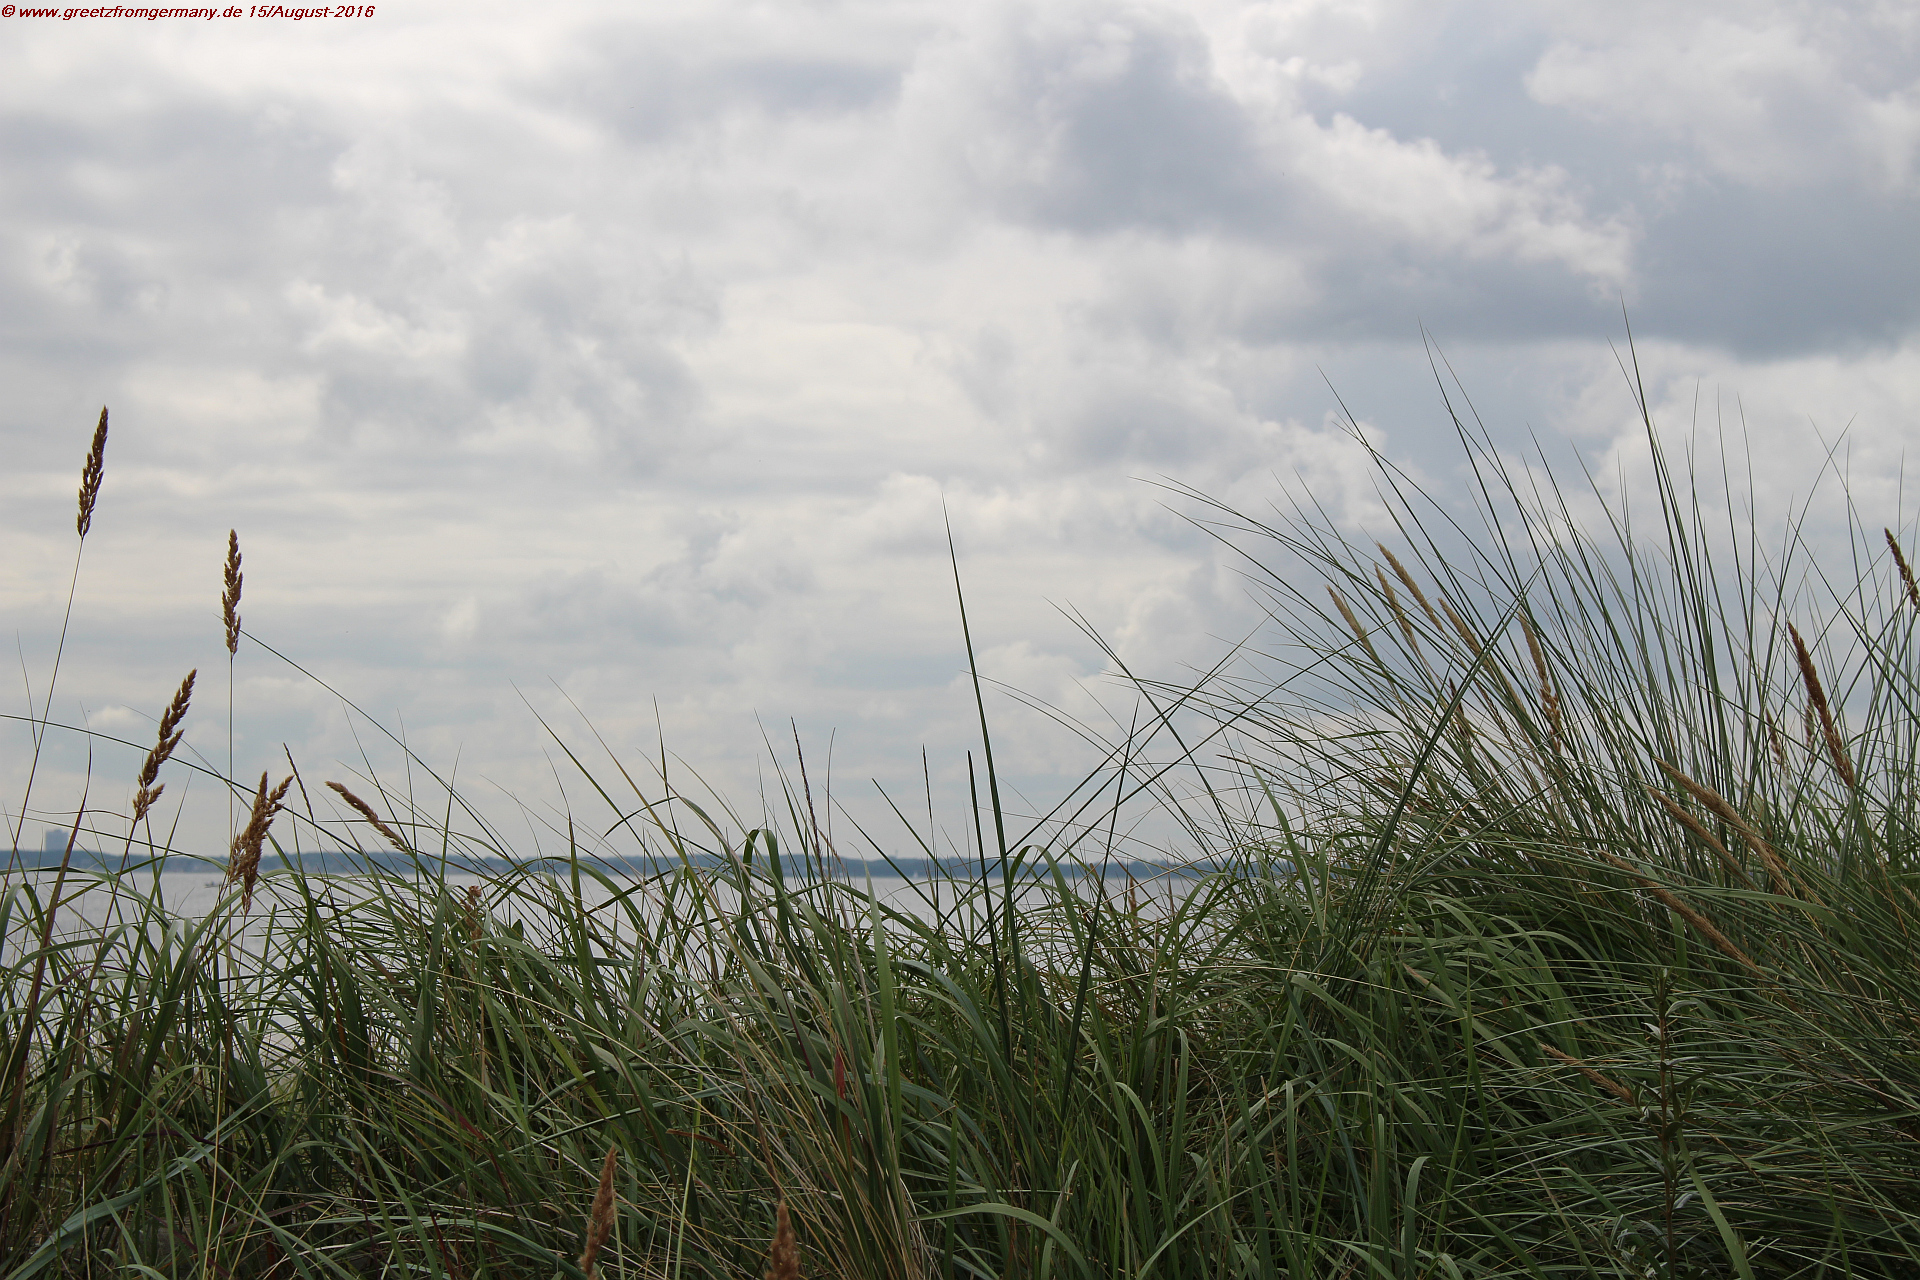 Beach grass, sand, water and clouds - the view opens wide unto the Baltic Sea at the beaches of little villages like Scharbeutz